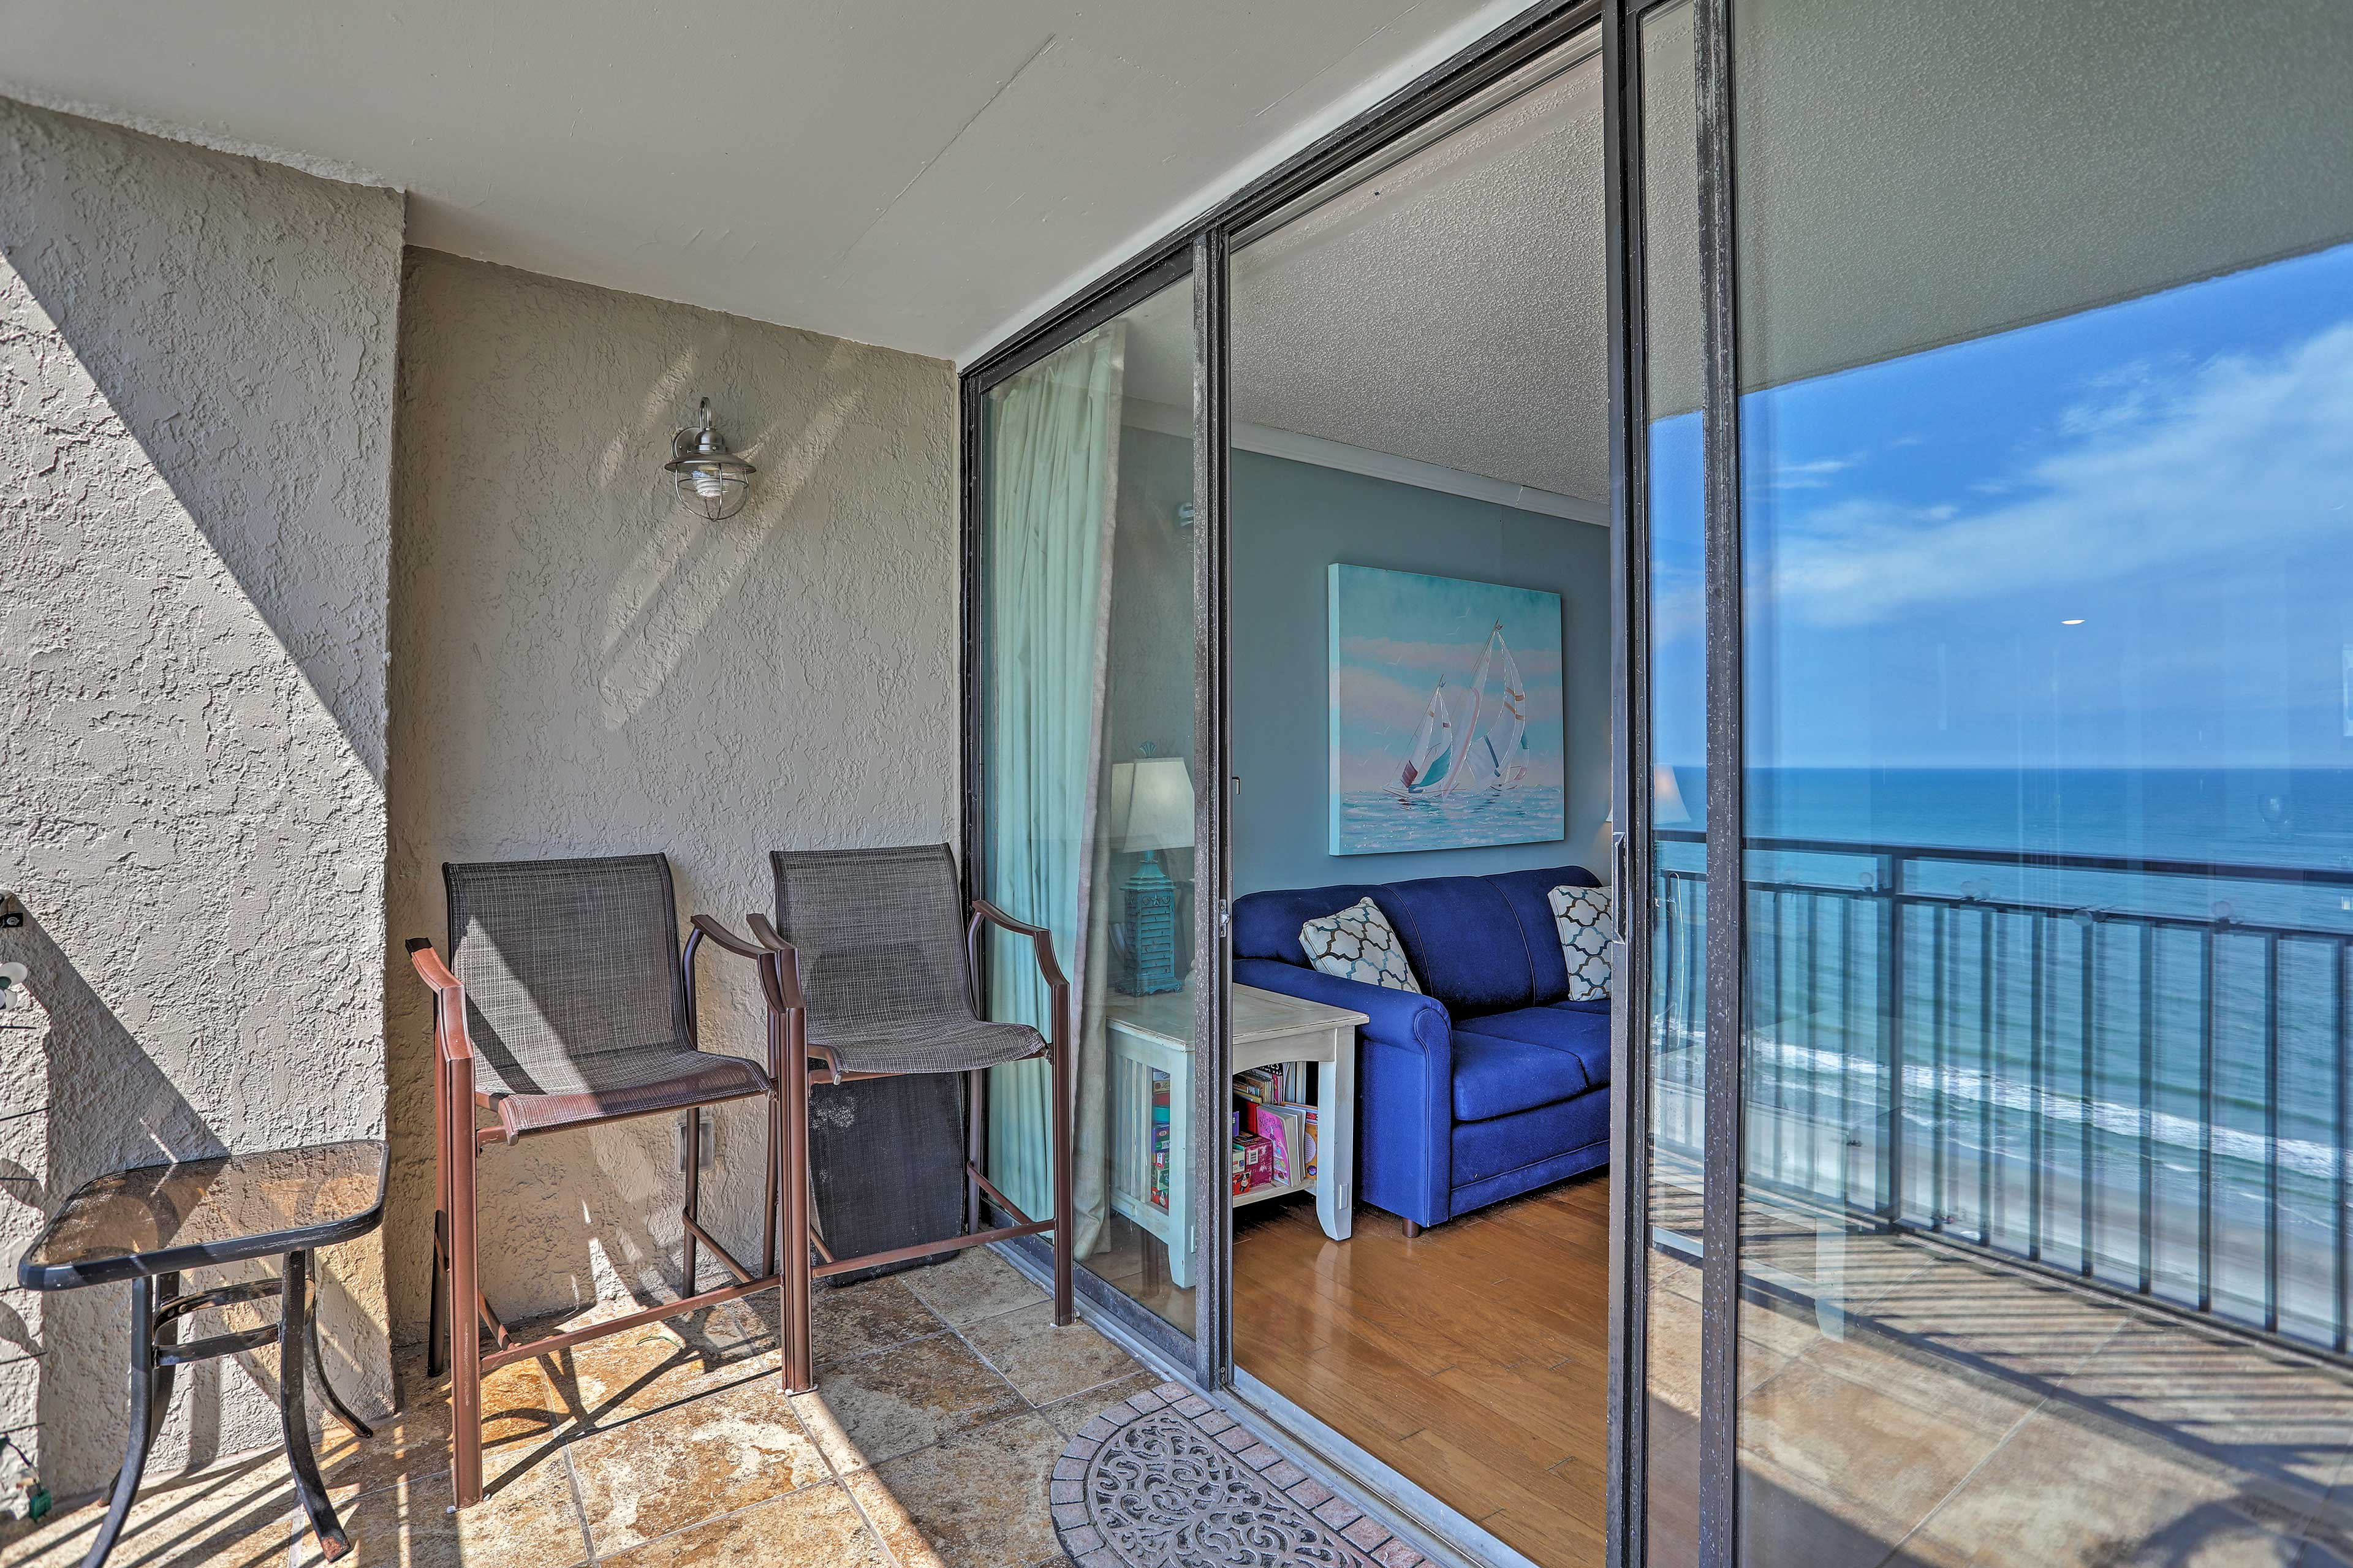 Enjoy the ocean breeze from the balcony and living area.